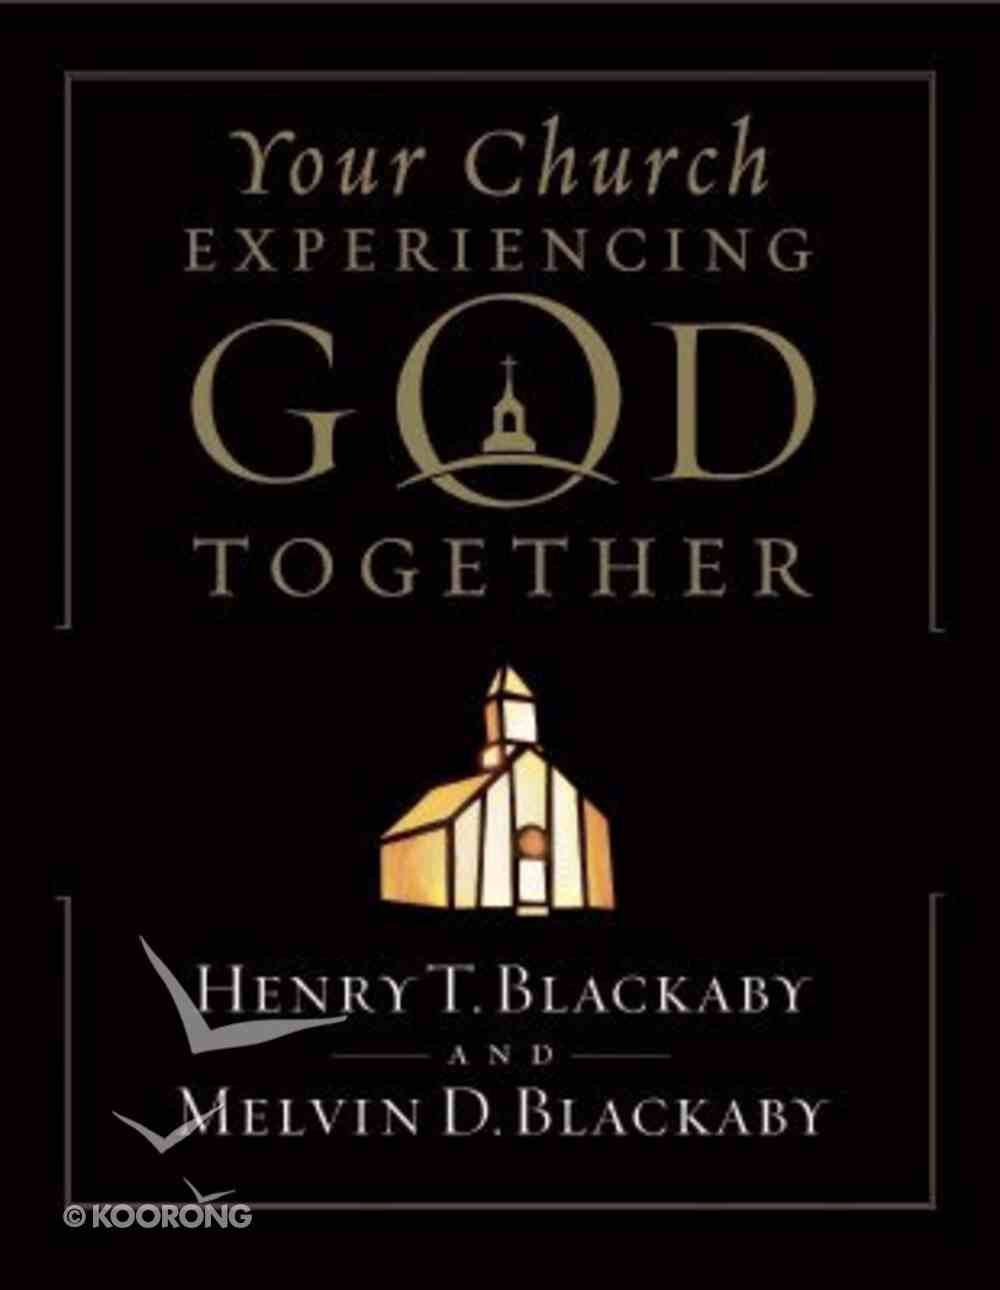 Your Church Experiencing God Together (Member Book) Paperback